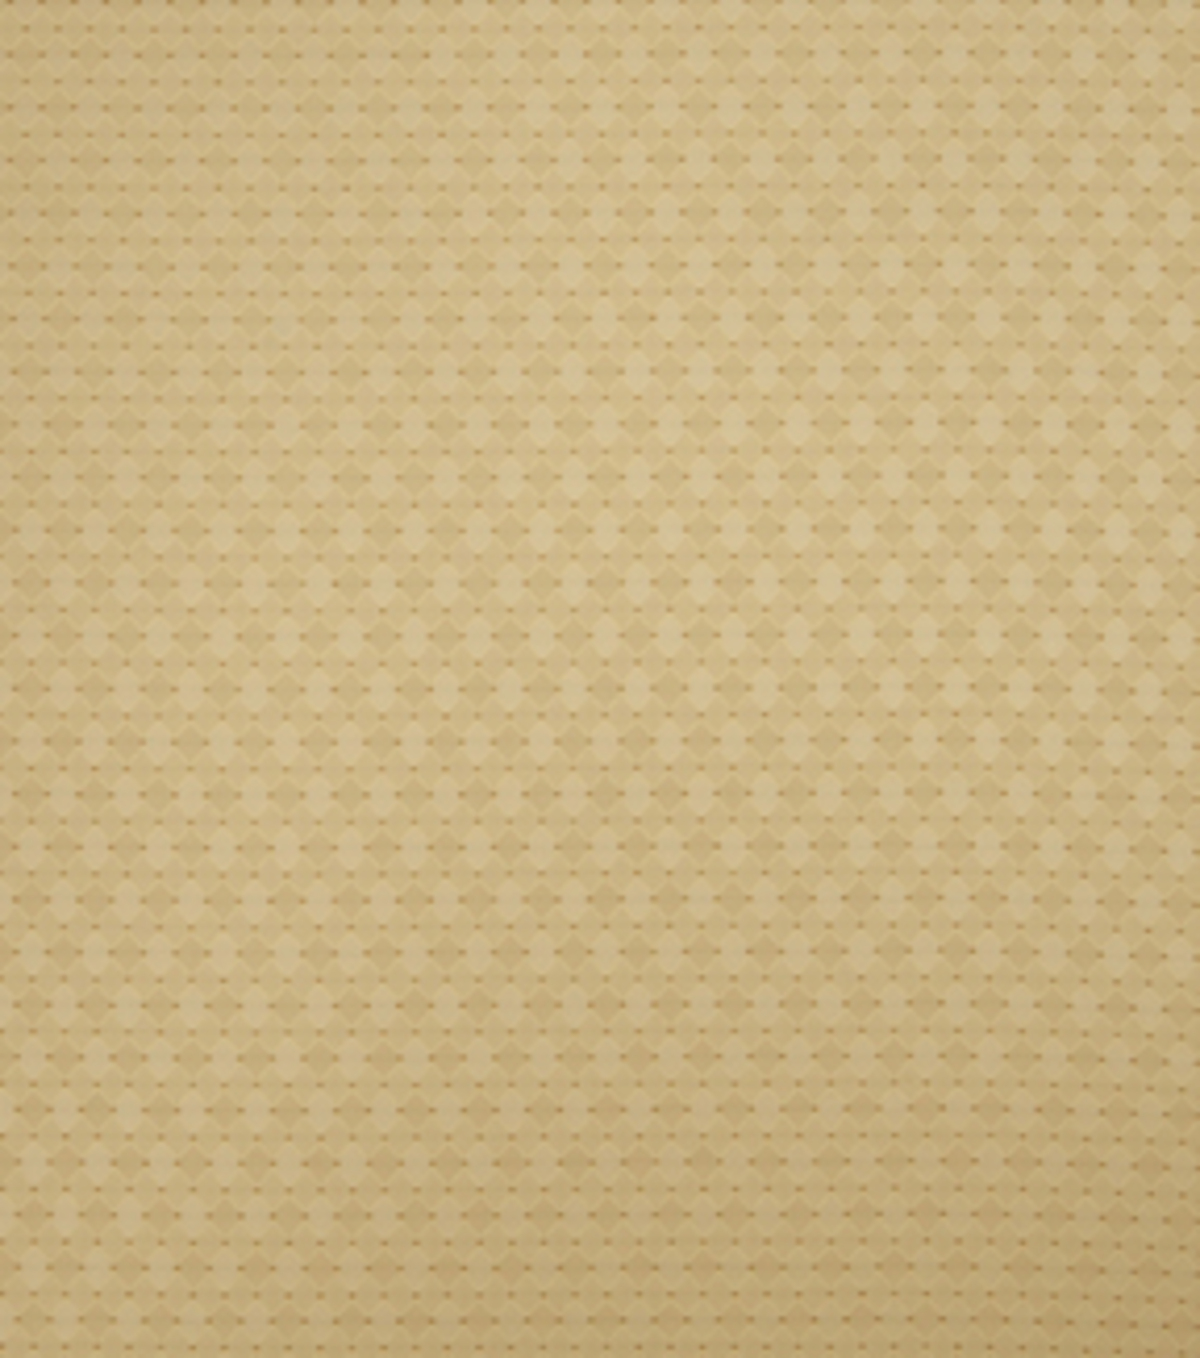 Home Decor 8\u0022x8\u0022 Fabric Swatch-Eaton Square Clinger Beige